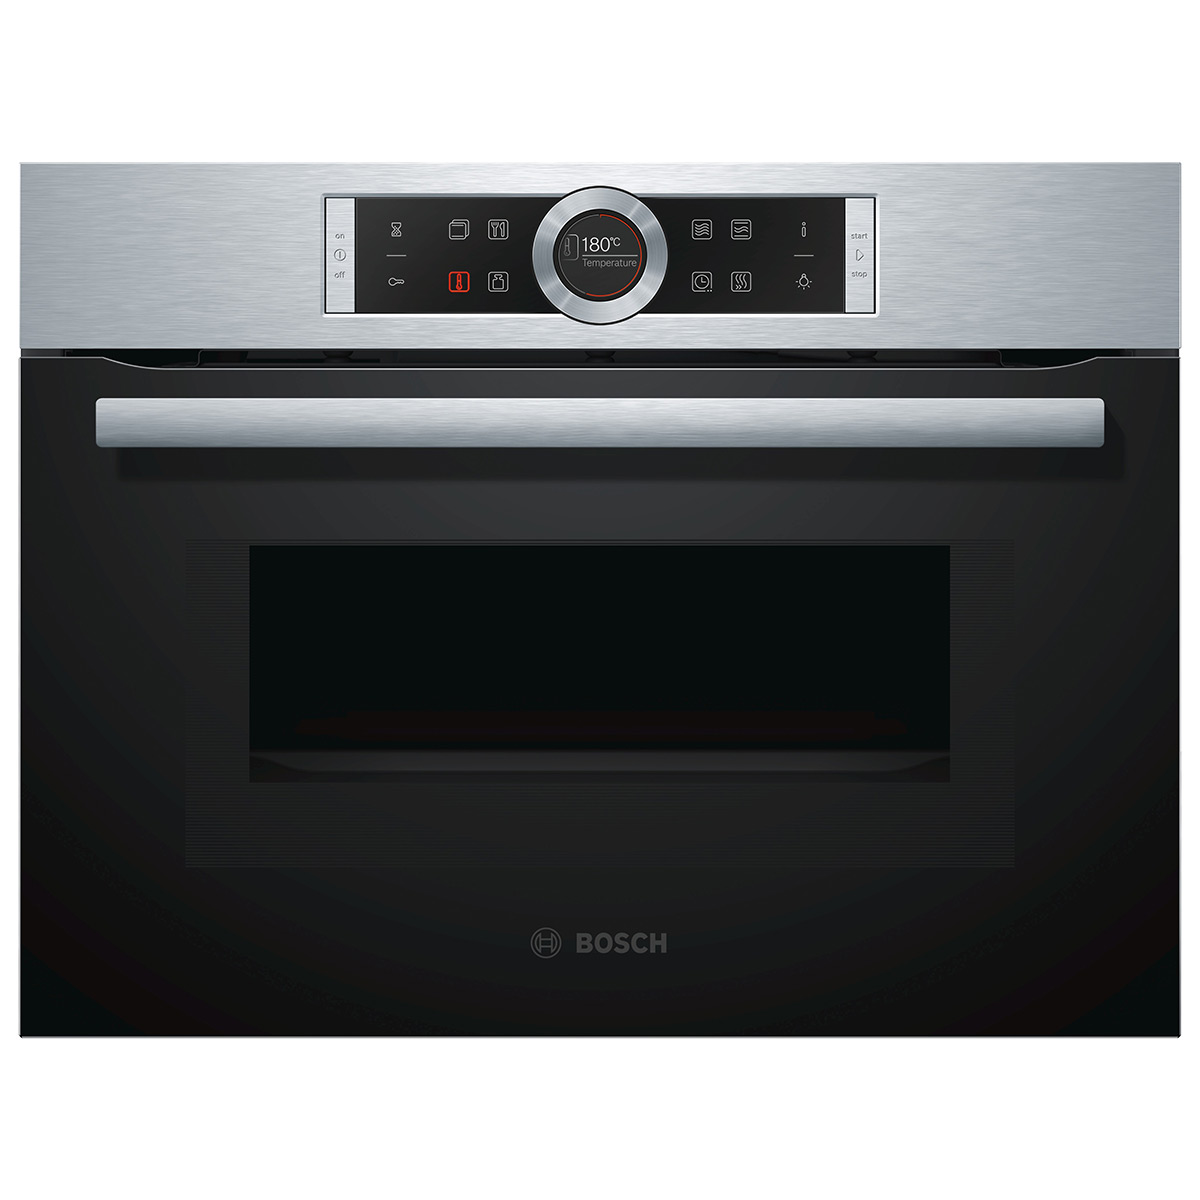 Bosch Cmg633bs1b Compact Built In Single Oven With Microwave Stainless Steel